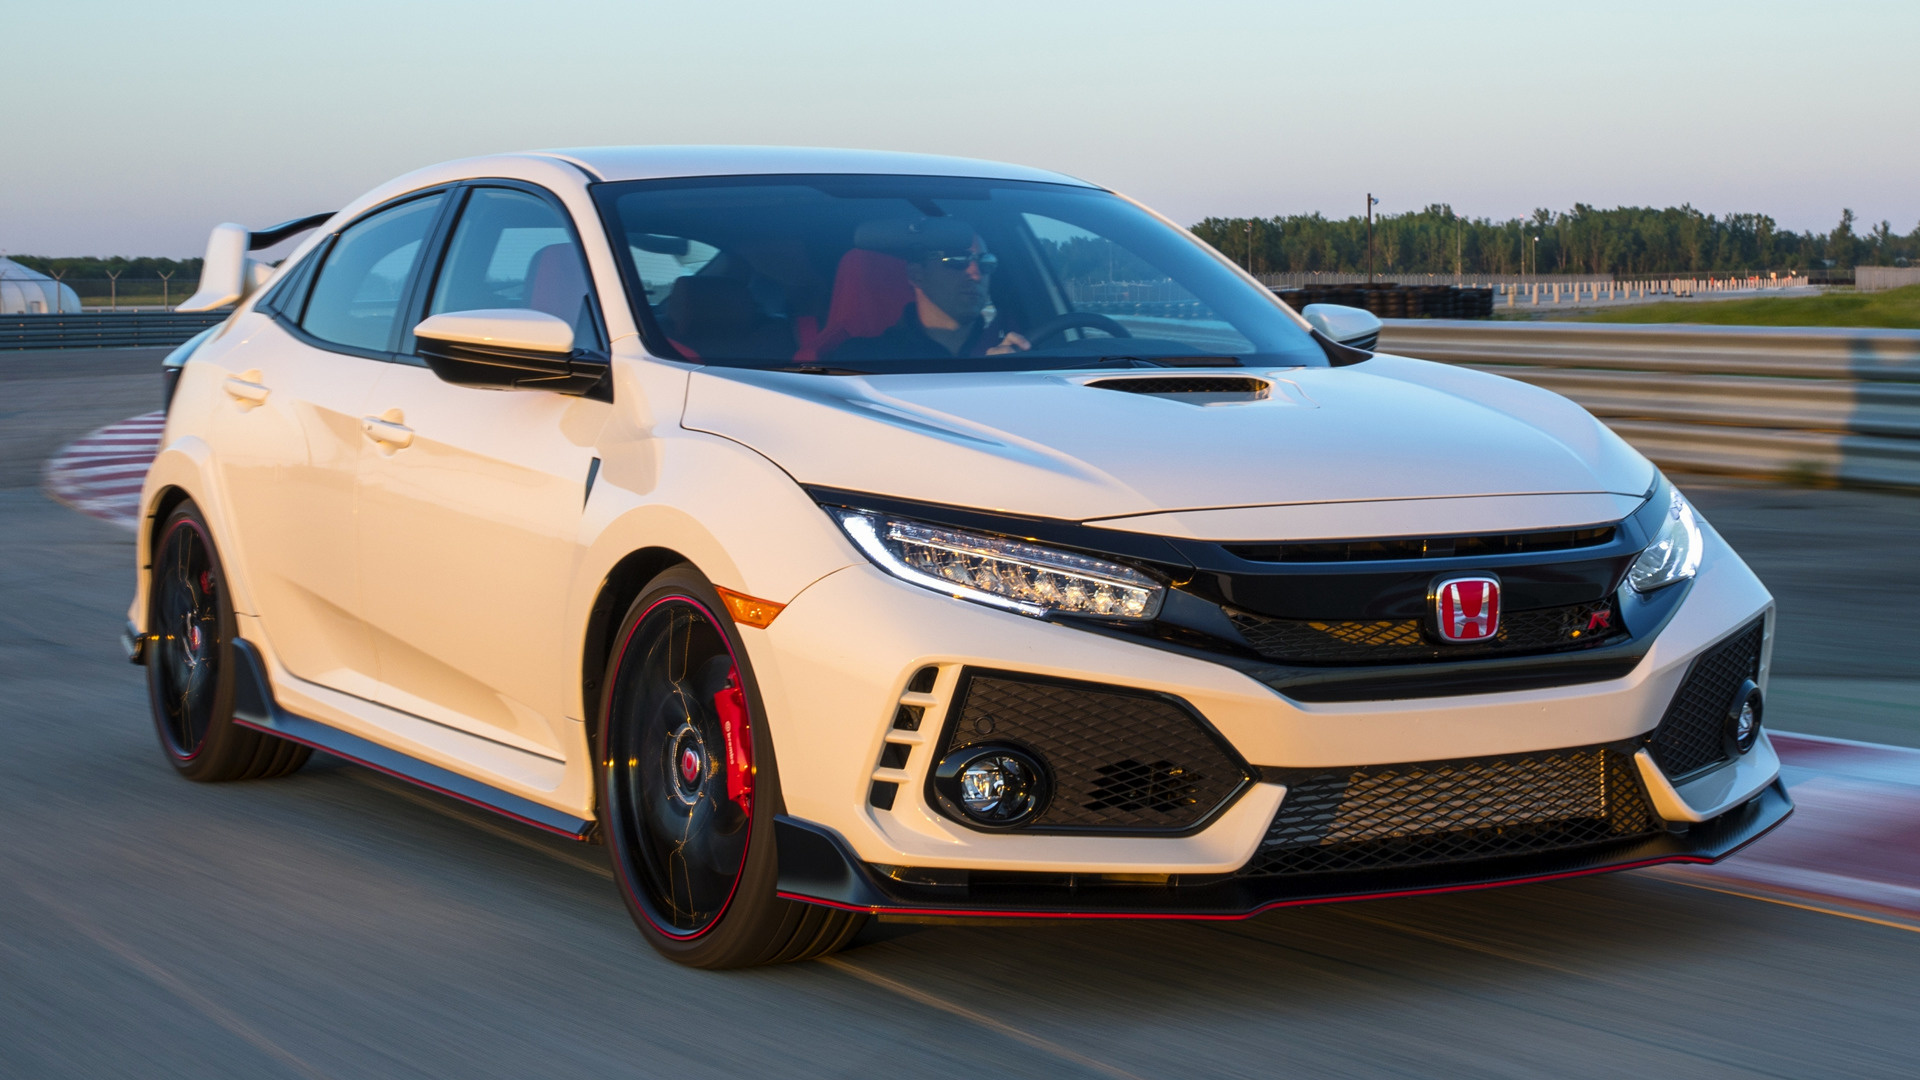 Car Wallpapers 4k Bentely Honda Civic Type R 2018 Us Wallpapers And Hd Images